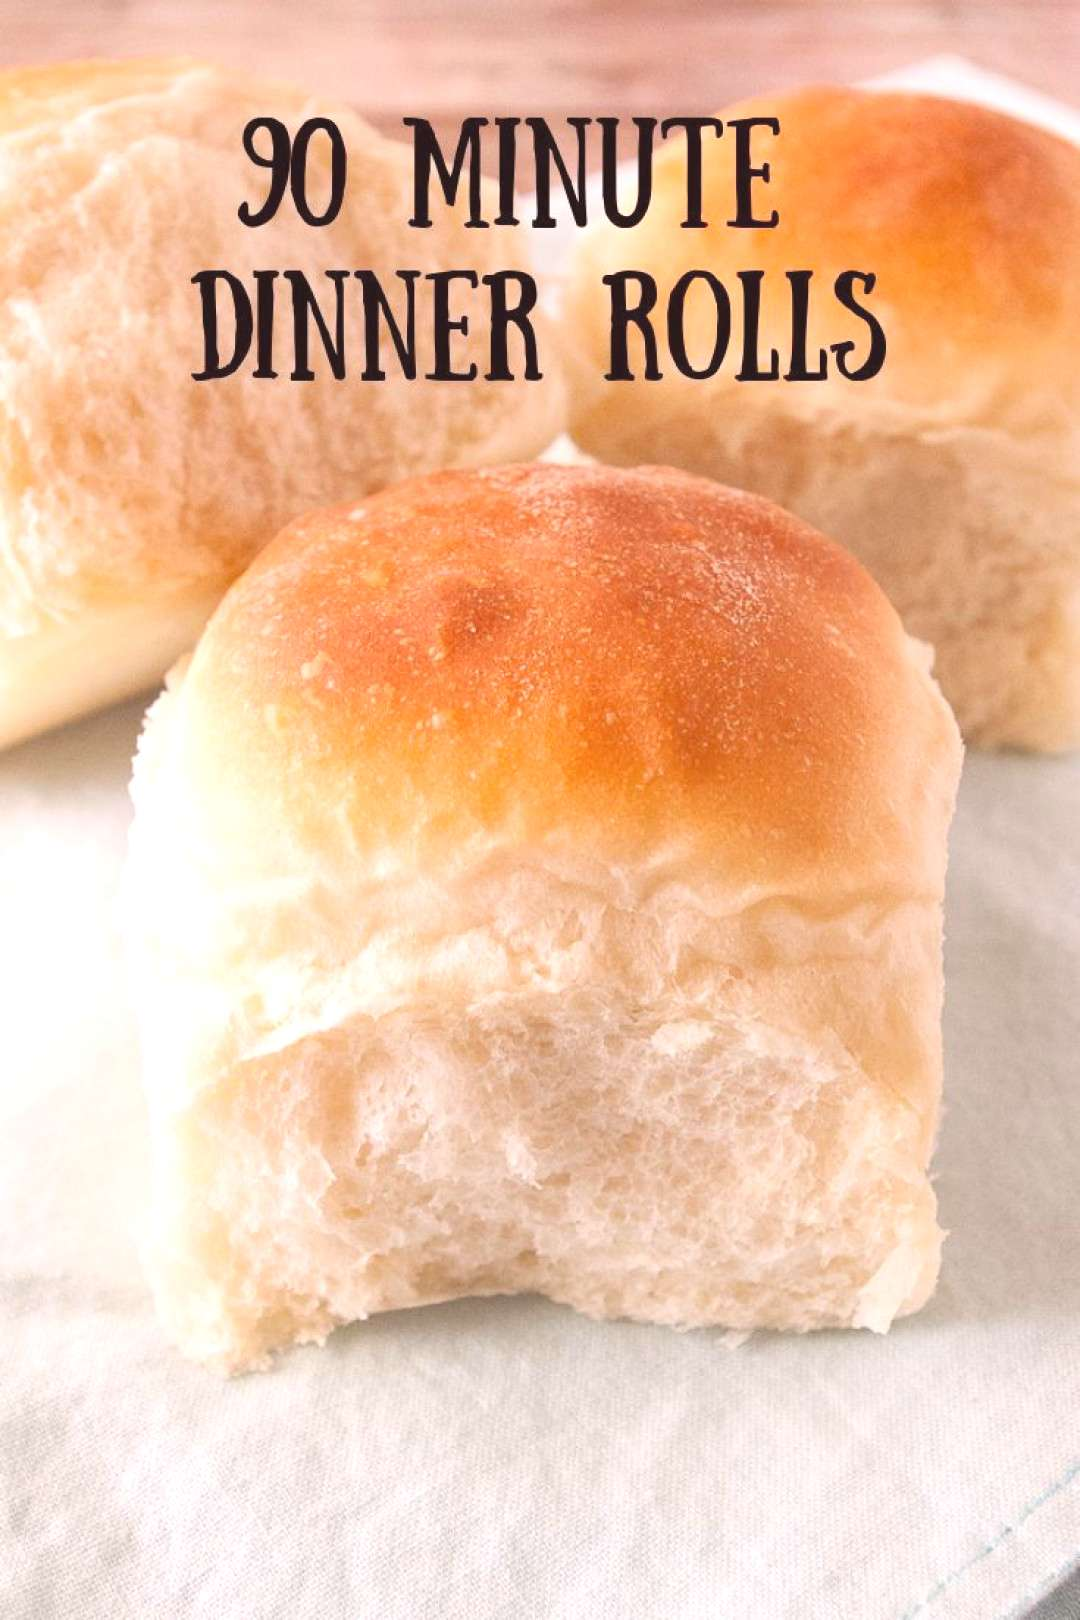 90 Minute Dinner Rolls Light, fluffy 90 minute dinner rolls! Cut down your time in the kitchen and